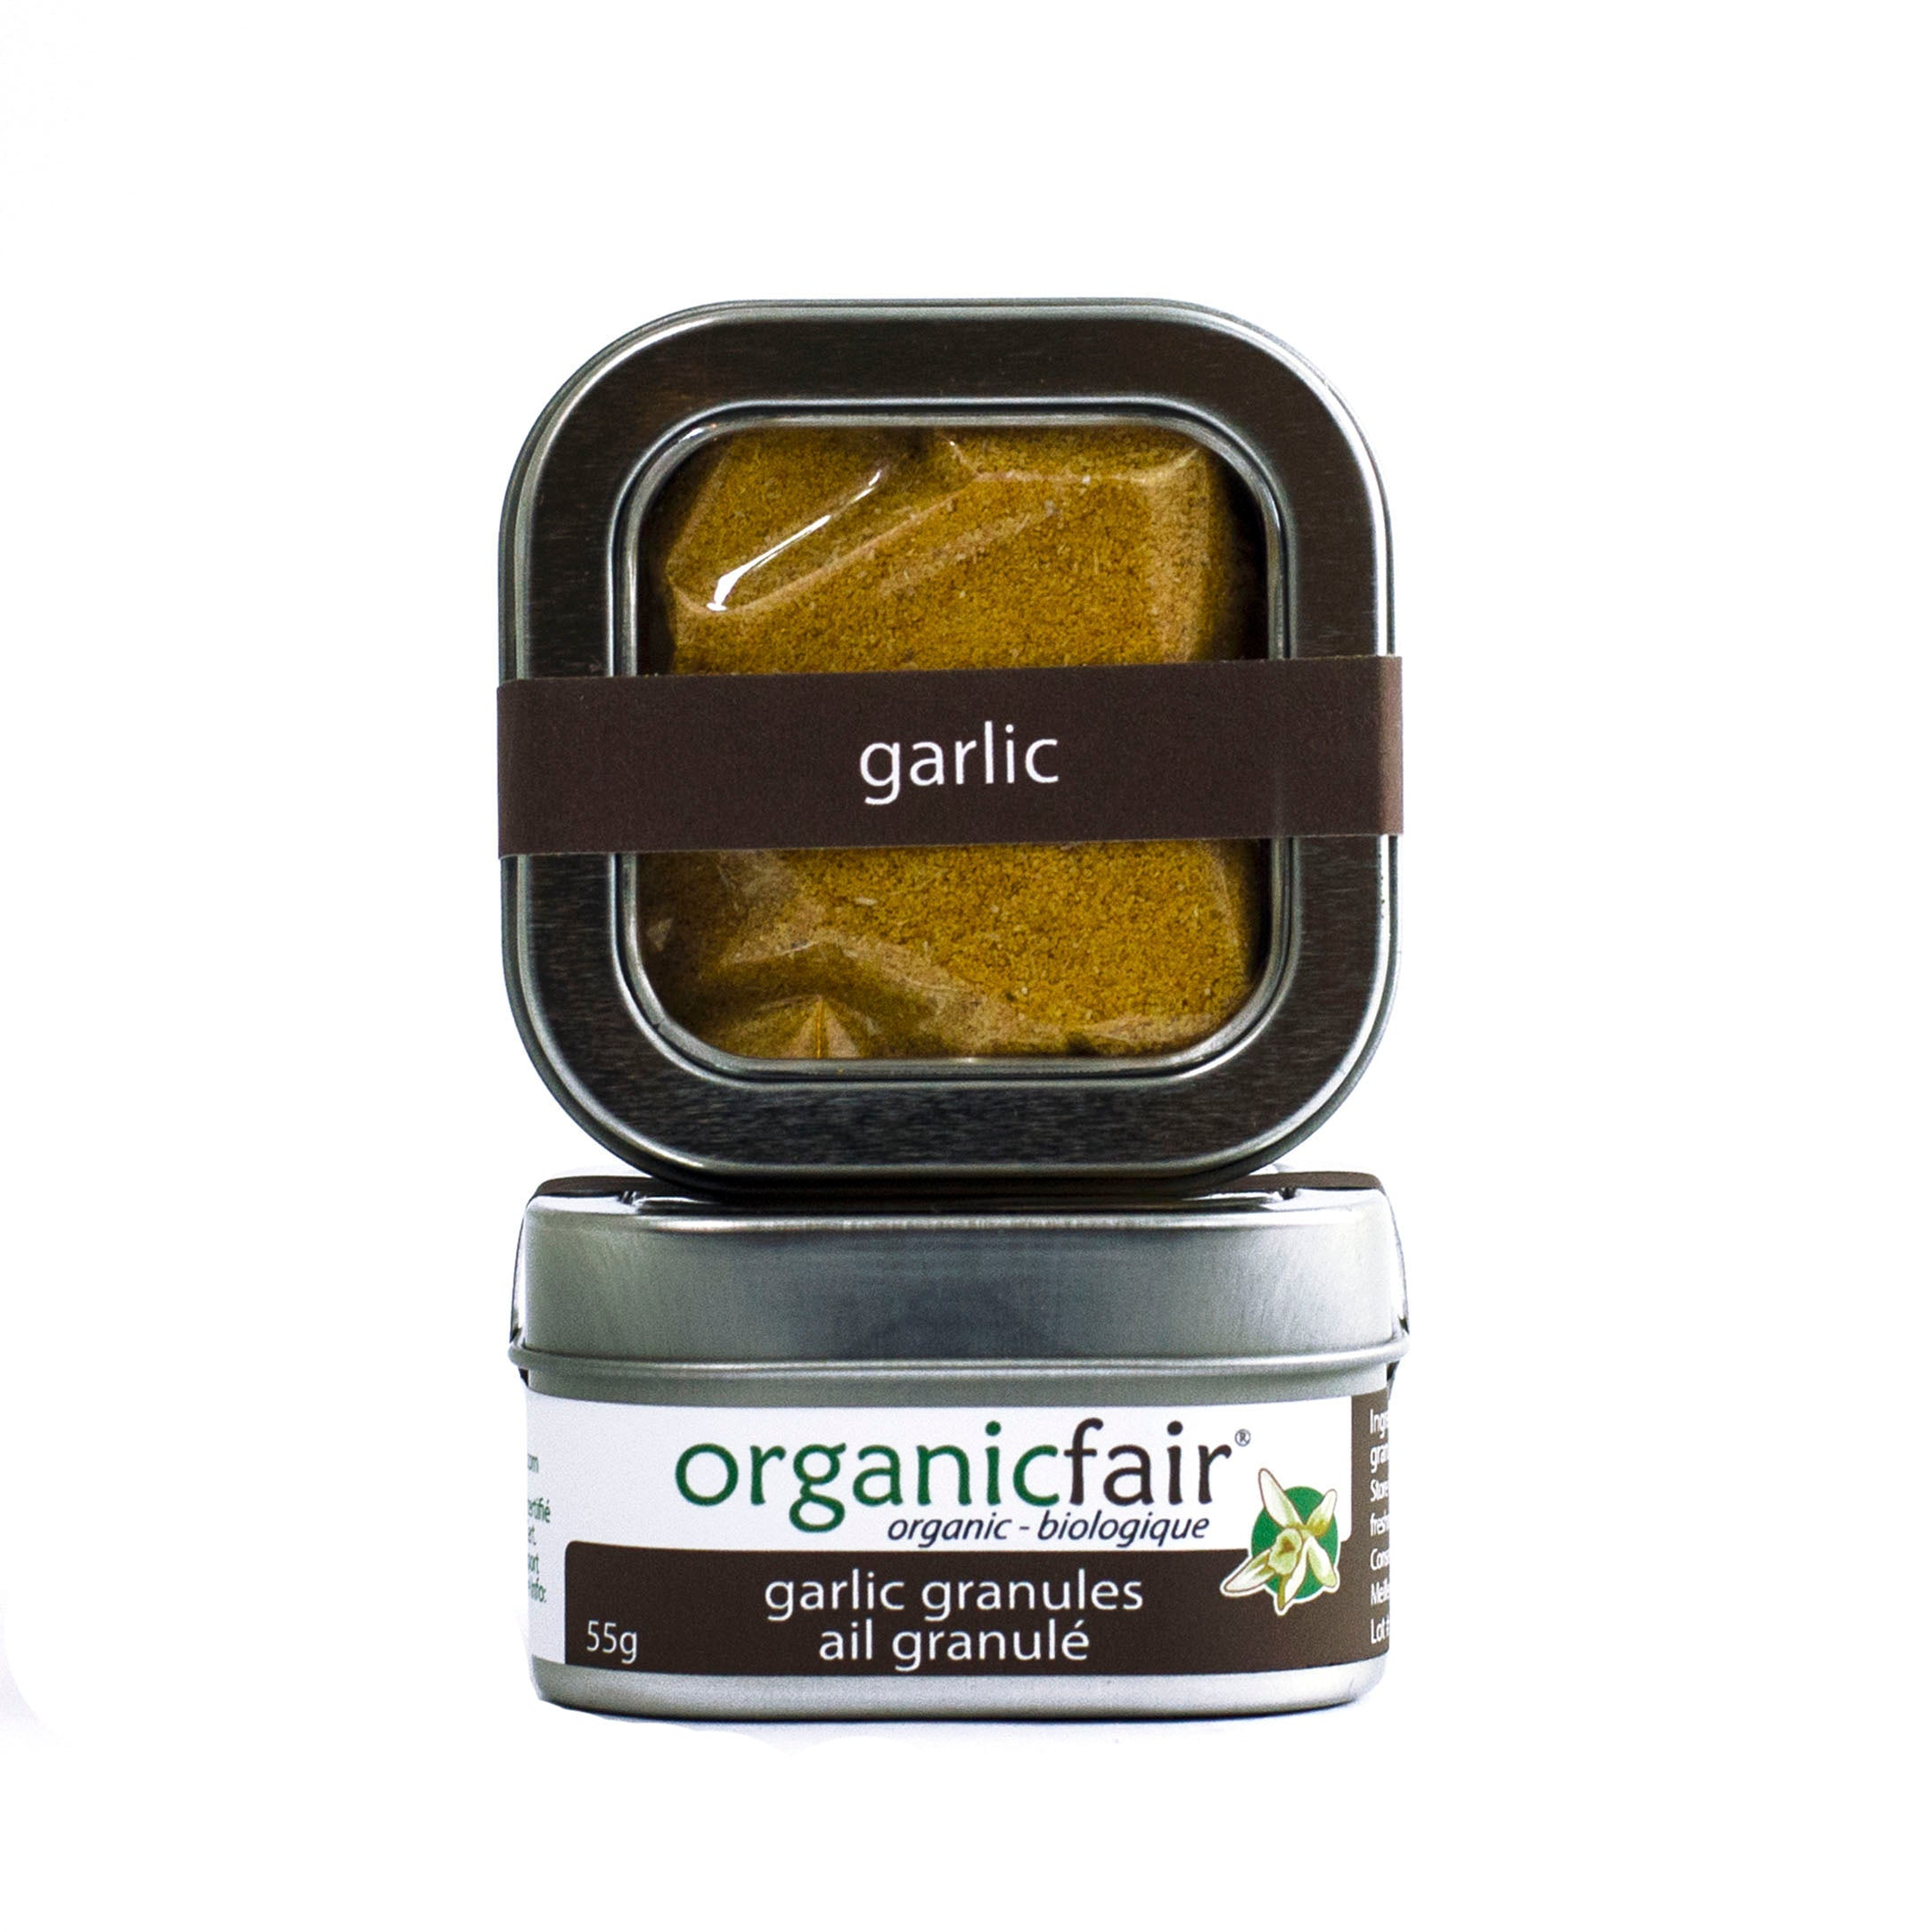 organicfair granulated garlic tin